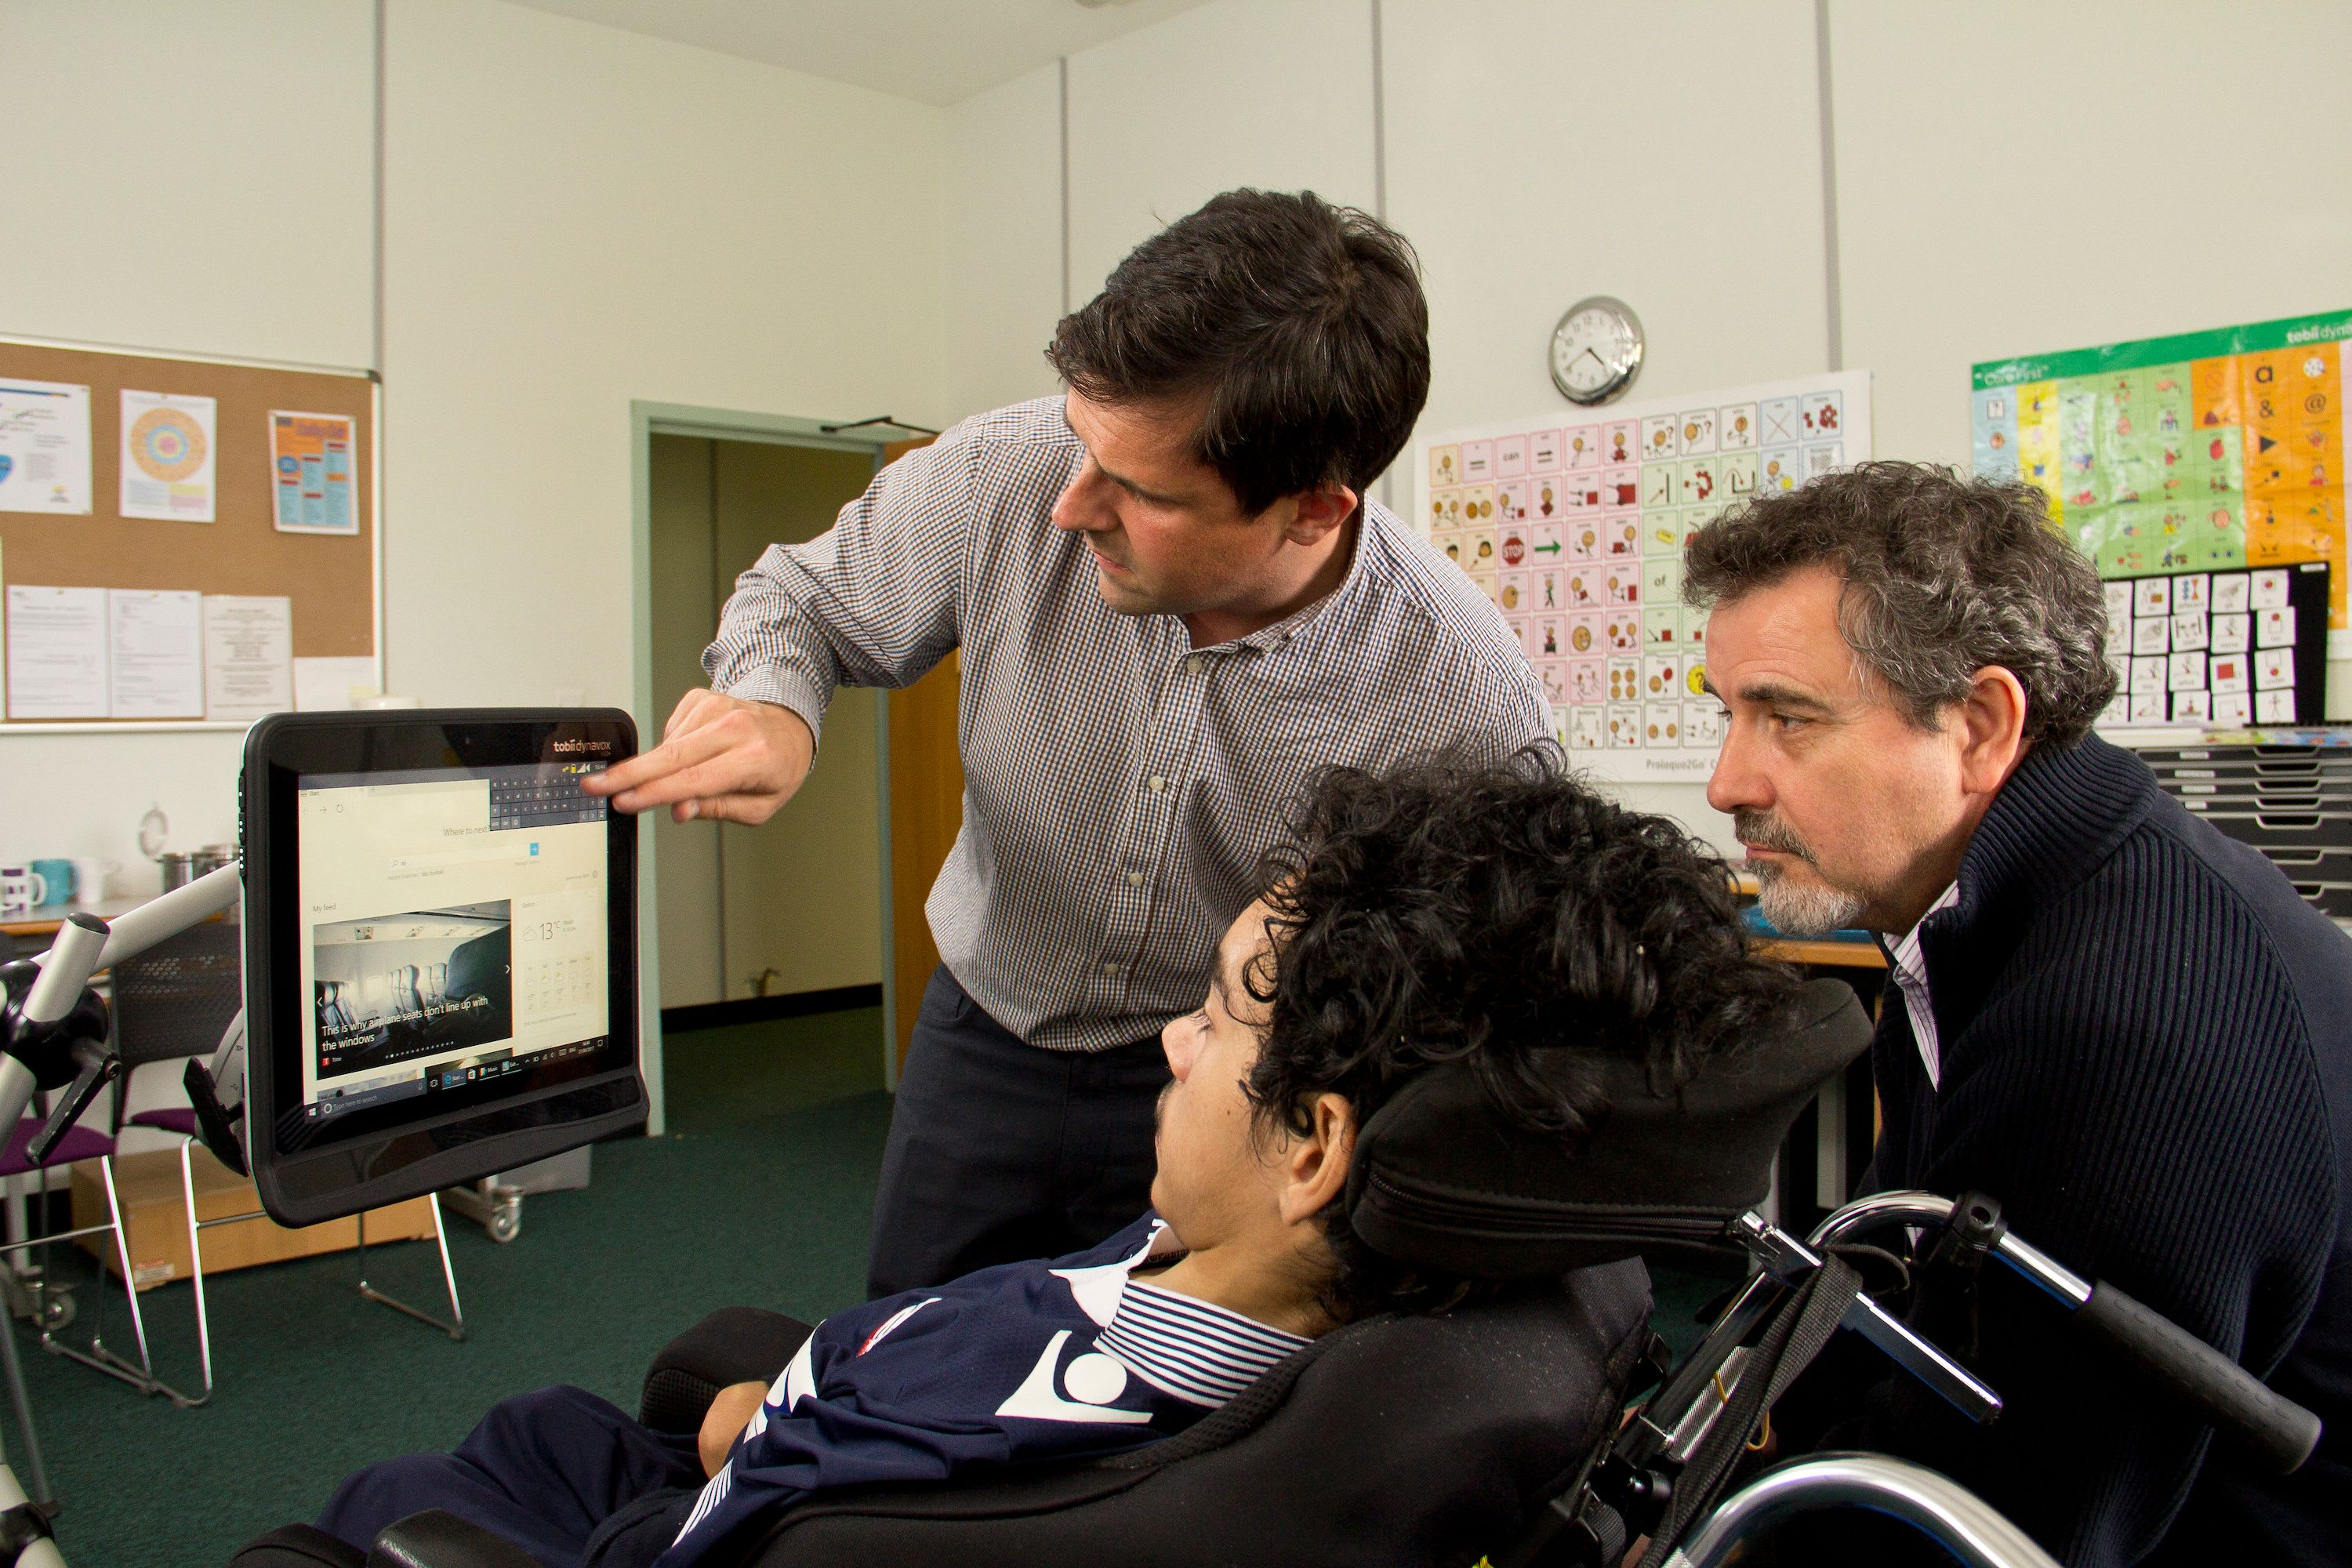 Ace centre employee showing a client how to use a communication device